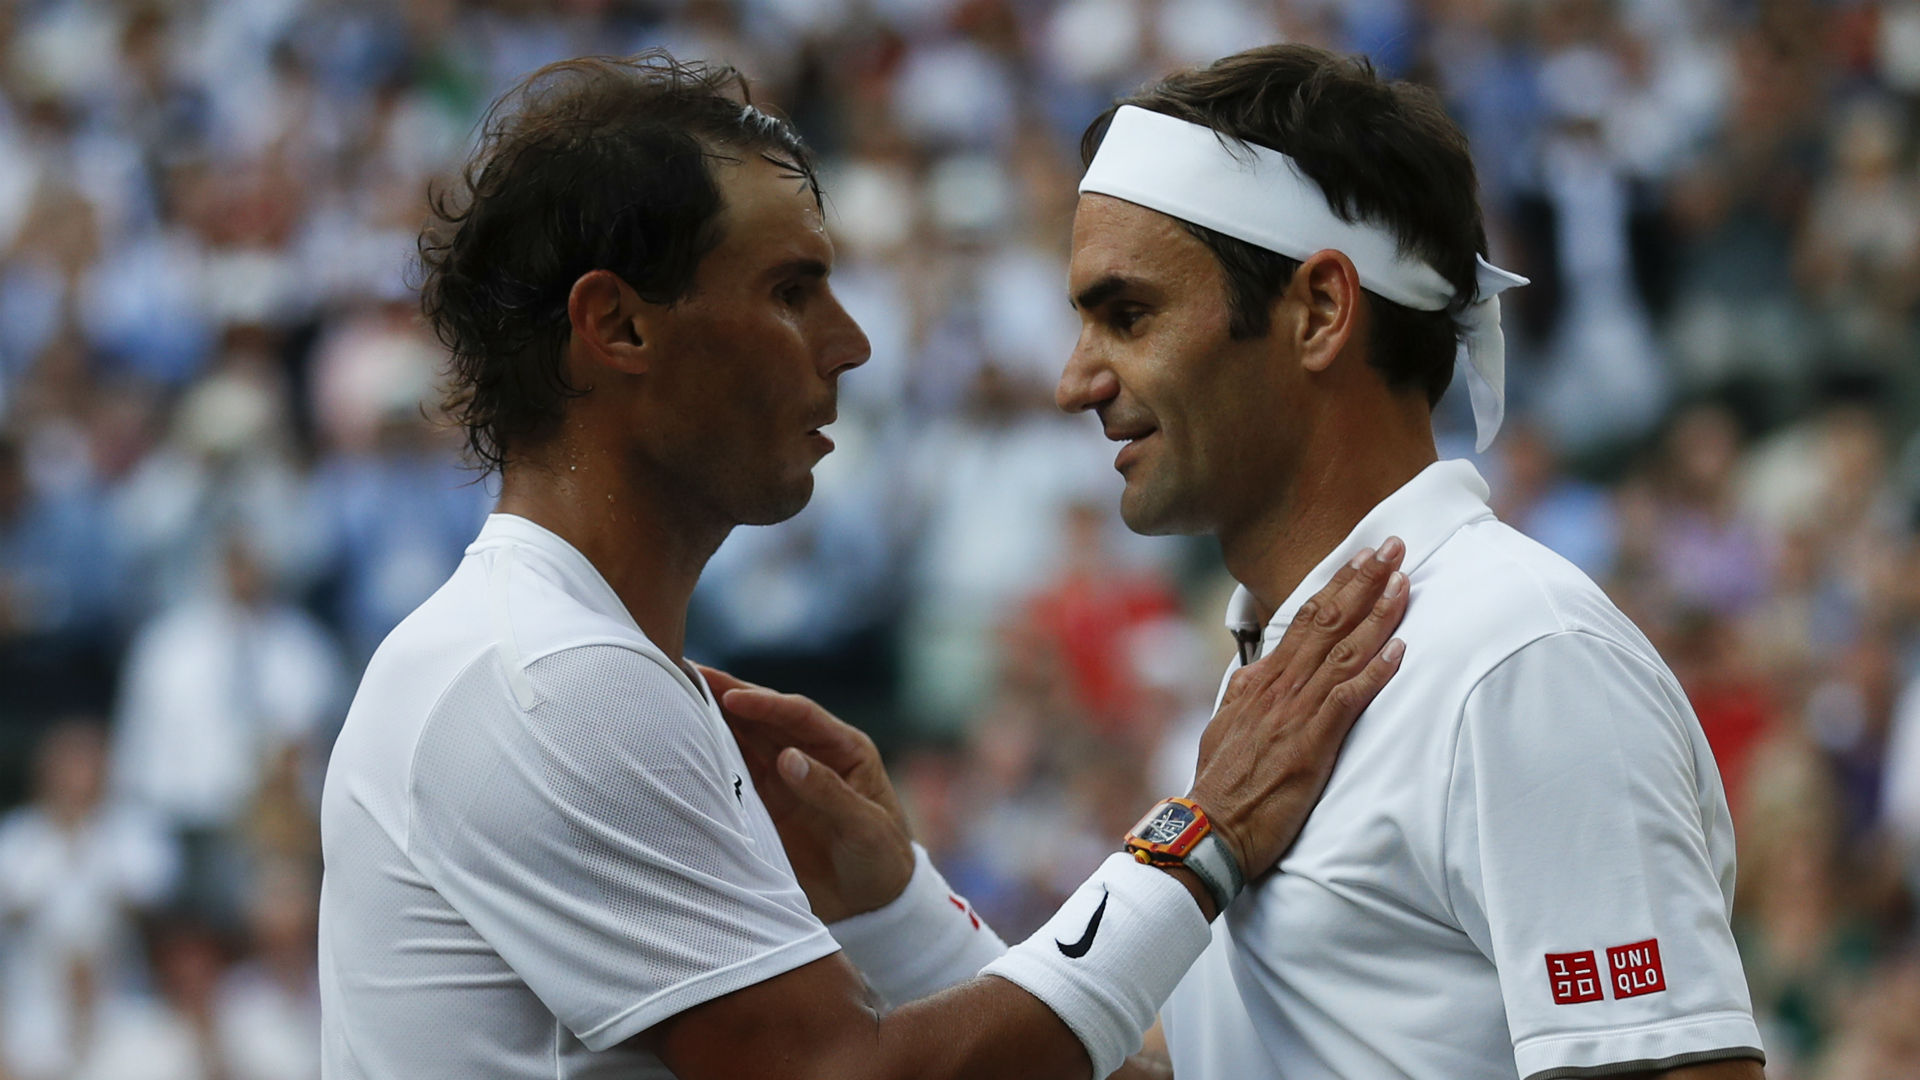 Rafael Nadal conceded that he did not play well enough to beat Roger Federer at Wimbledon in their 40th encounter.